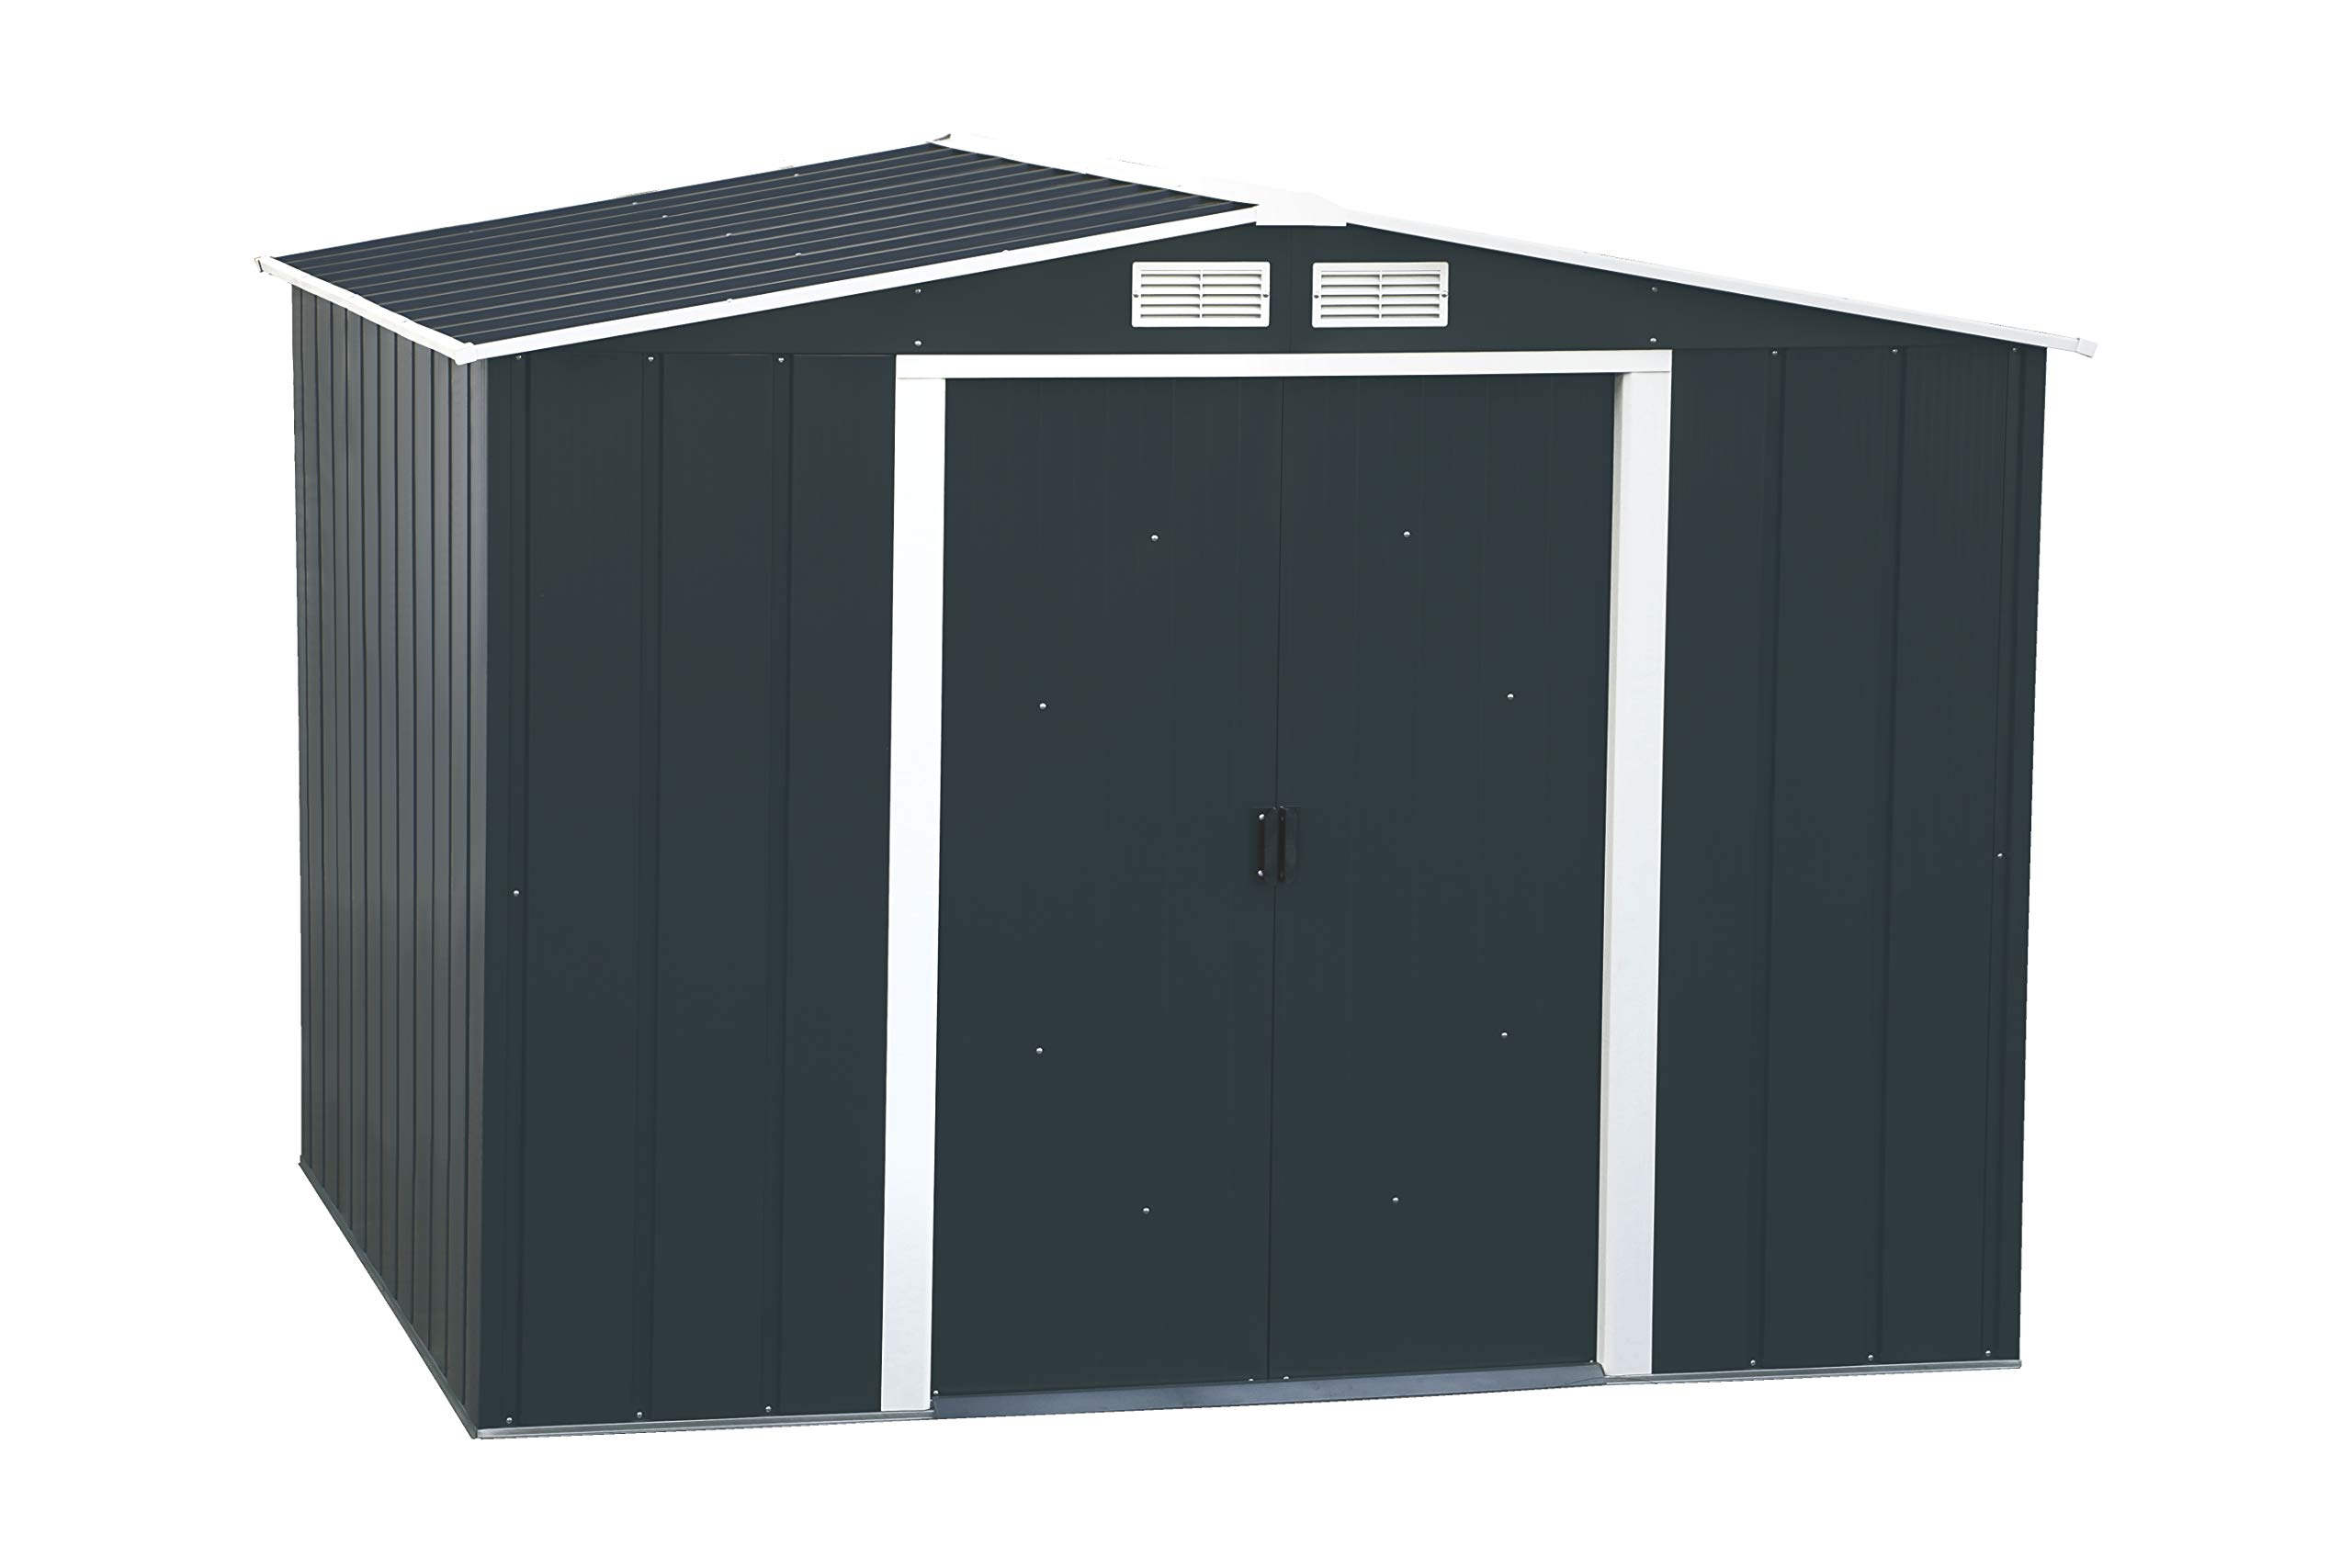 Duramax Eco 8 X 8 Hot Dipped Galvanized Metal Garden Shed Anthracite With Off White Trimmings 15 Years Warranty Amazon Co Uk Garden Outdoors